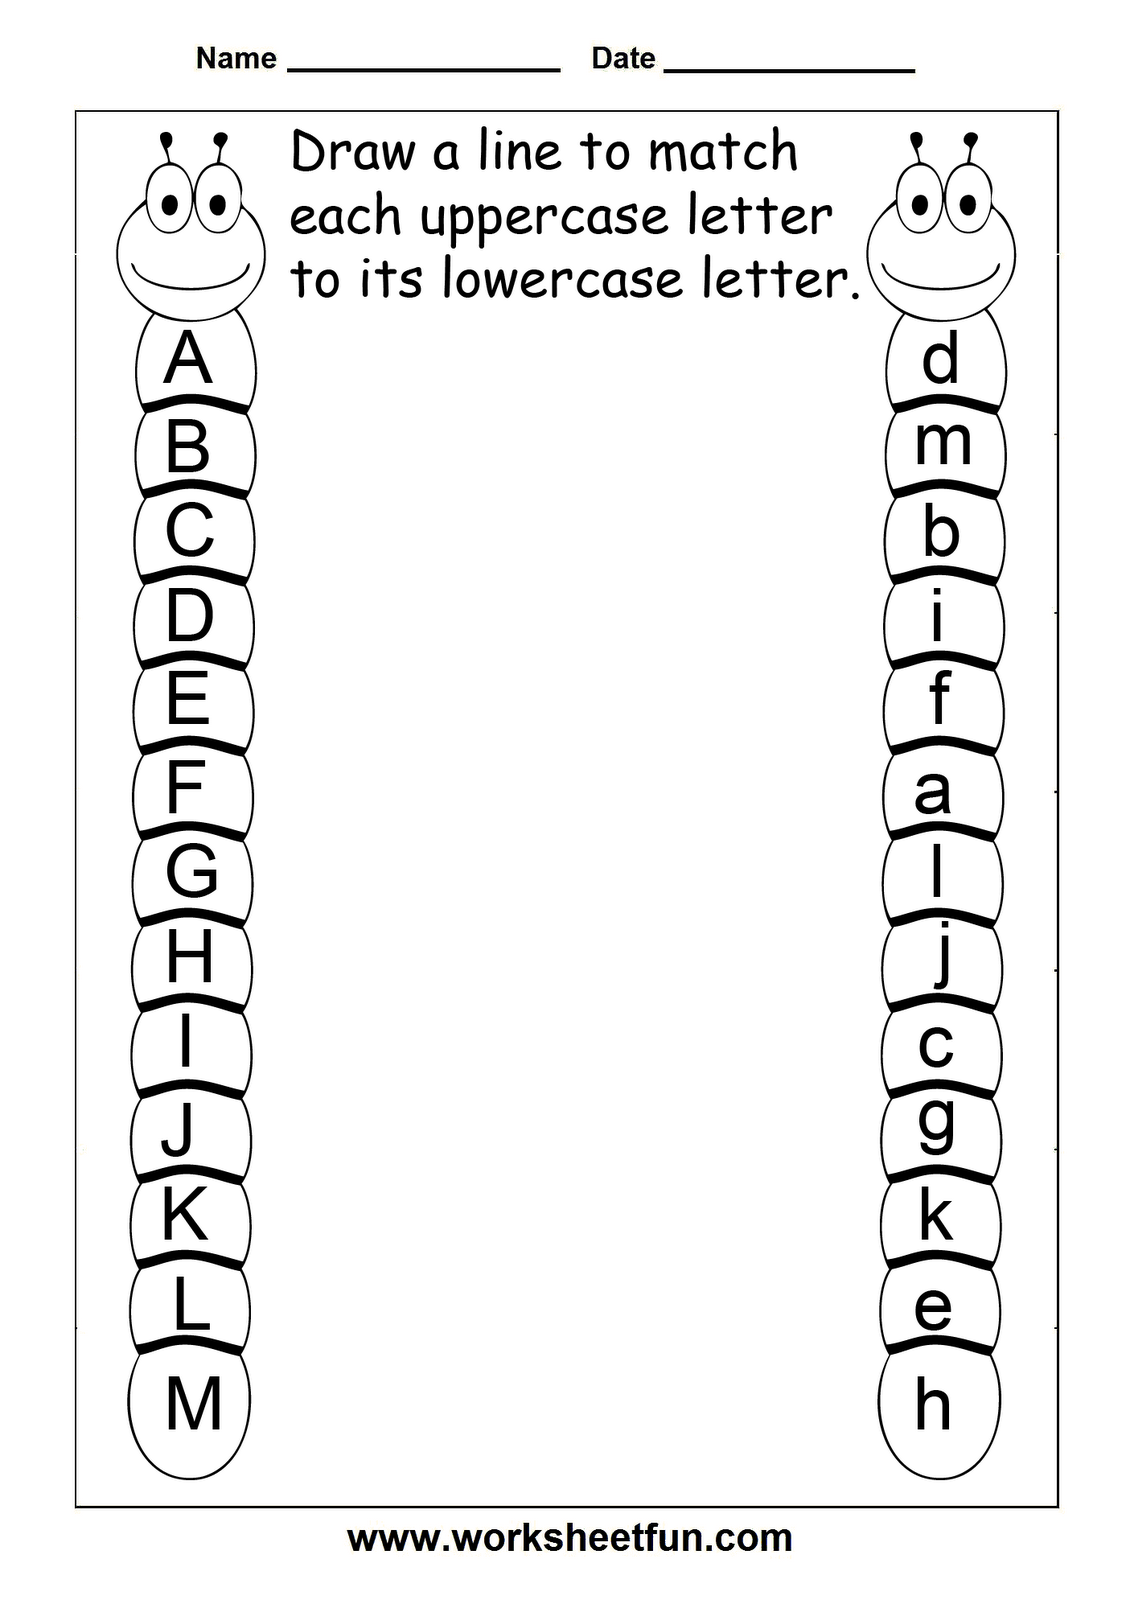 Pin by Ashley Hibbs on kiddo | Pinterest | Preschool worksheets ...